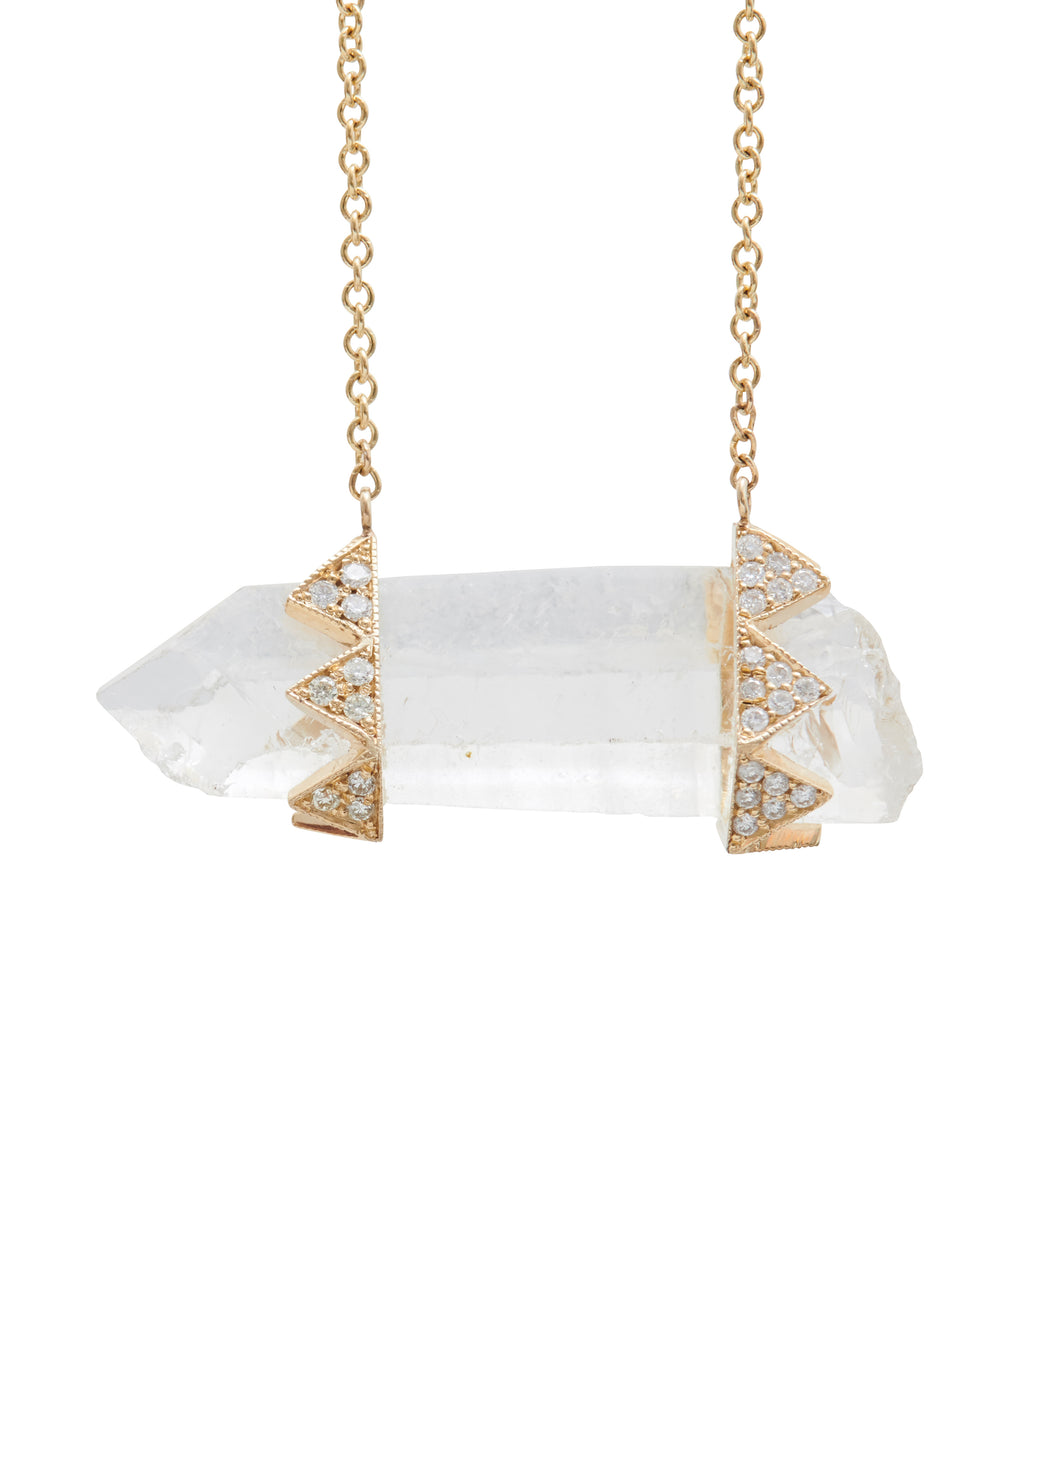 GOLD DIAMOND AND CLEAR QUARTZ HORIZONTAL CRYSTAL PENDANT NECKLACE